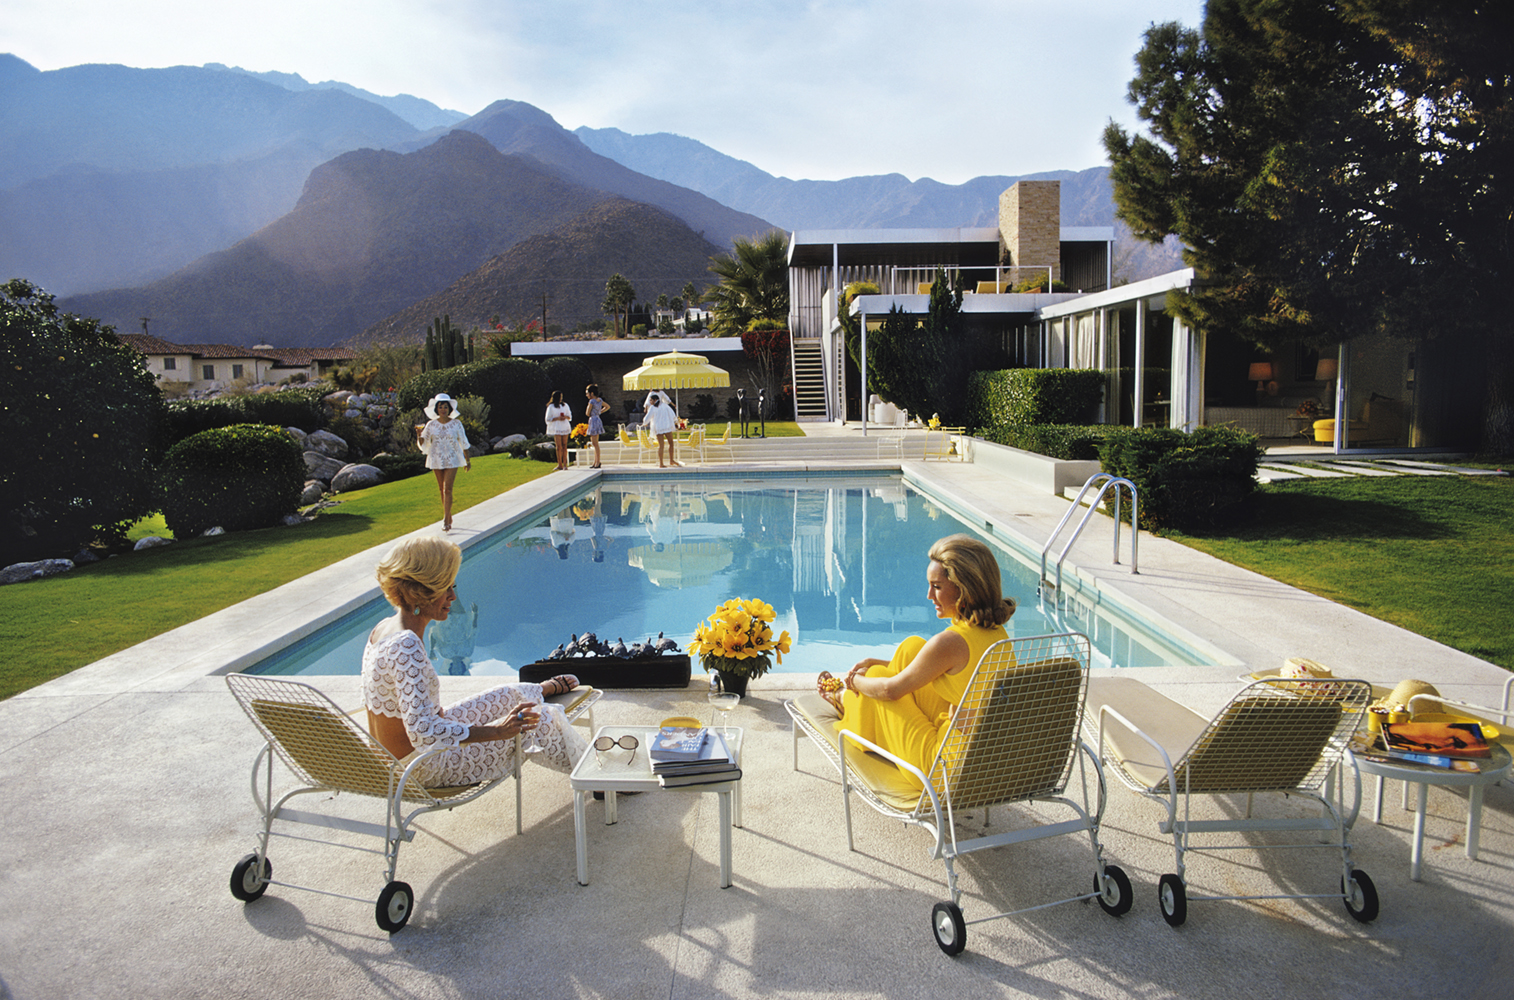 Poolside Glamour – Limited Slim Aarons Estate Edition by Slim Aarons